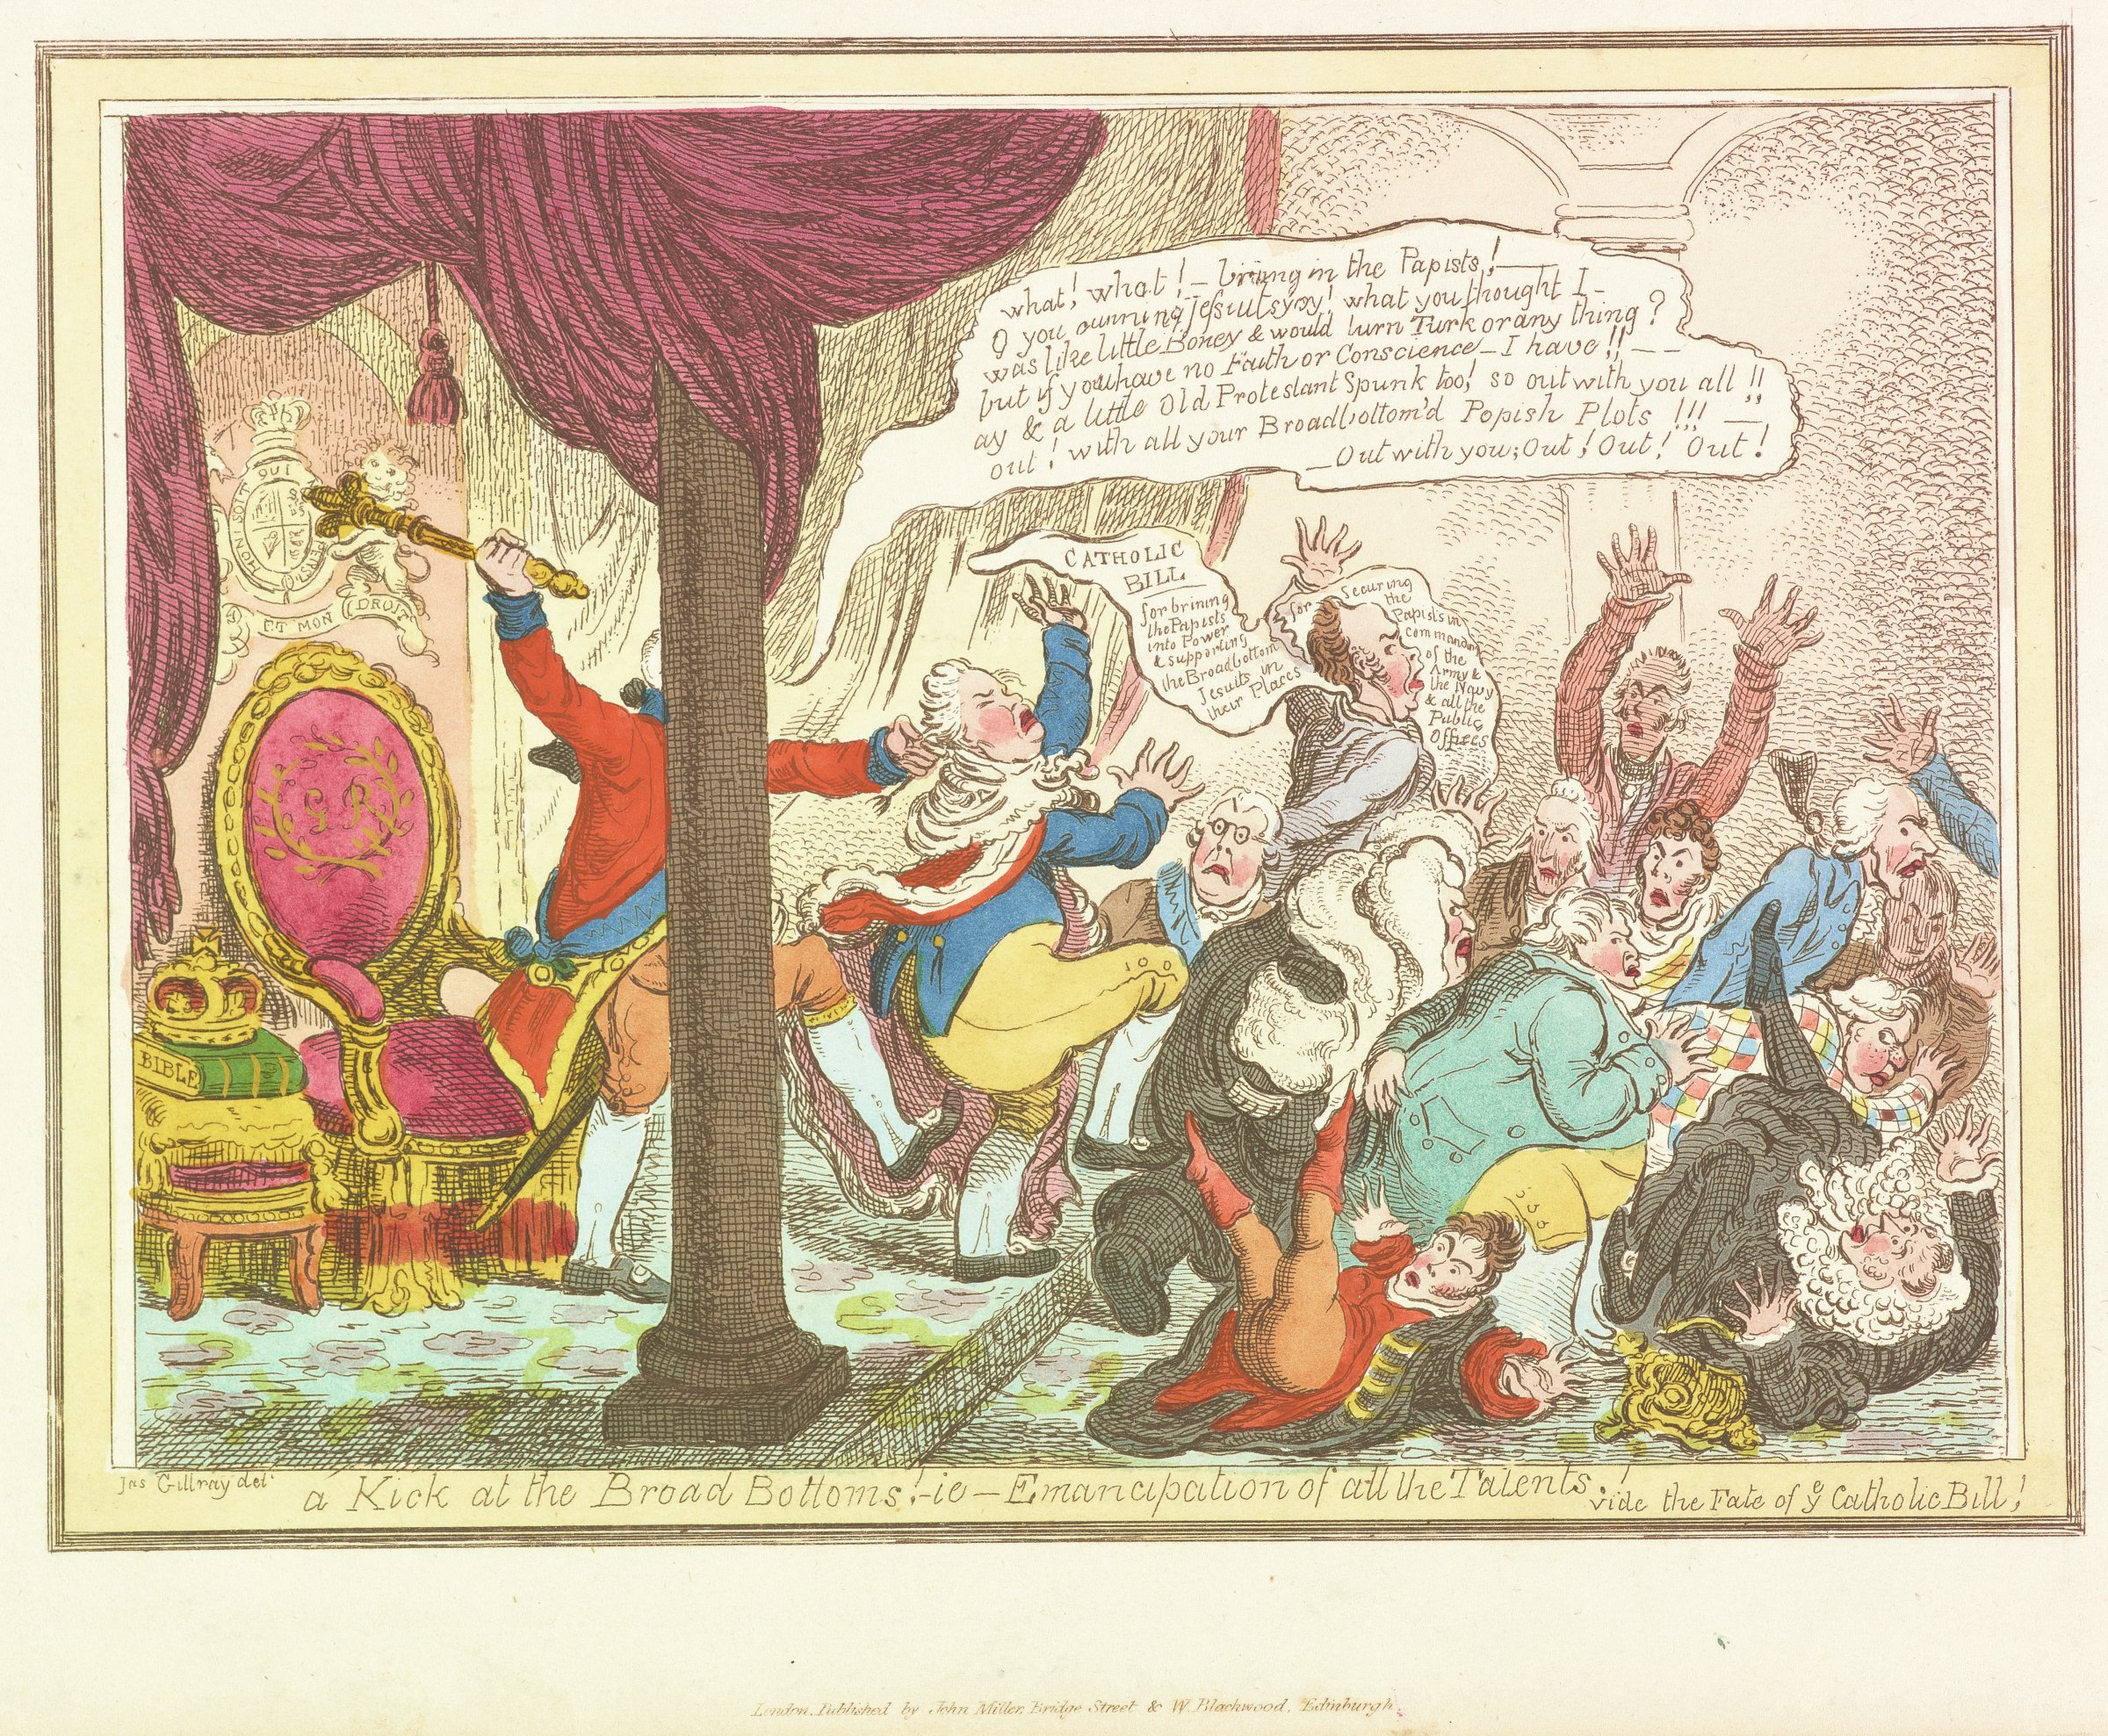 Scene of King George III (whose face is hidden behind a column) kicking the bottom of a lord, pulling his hair, and raising his scepter as if to fell a blow. Other lords have tumbled into a pile trying to escape the king's violent response to their proposal of a bill of Catholic emancipation, which sought to remove legal tests and other restrictions on Catholics imposed since the reign of Henry VIII.